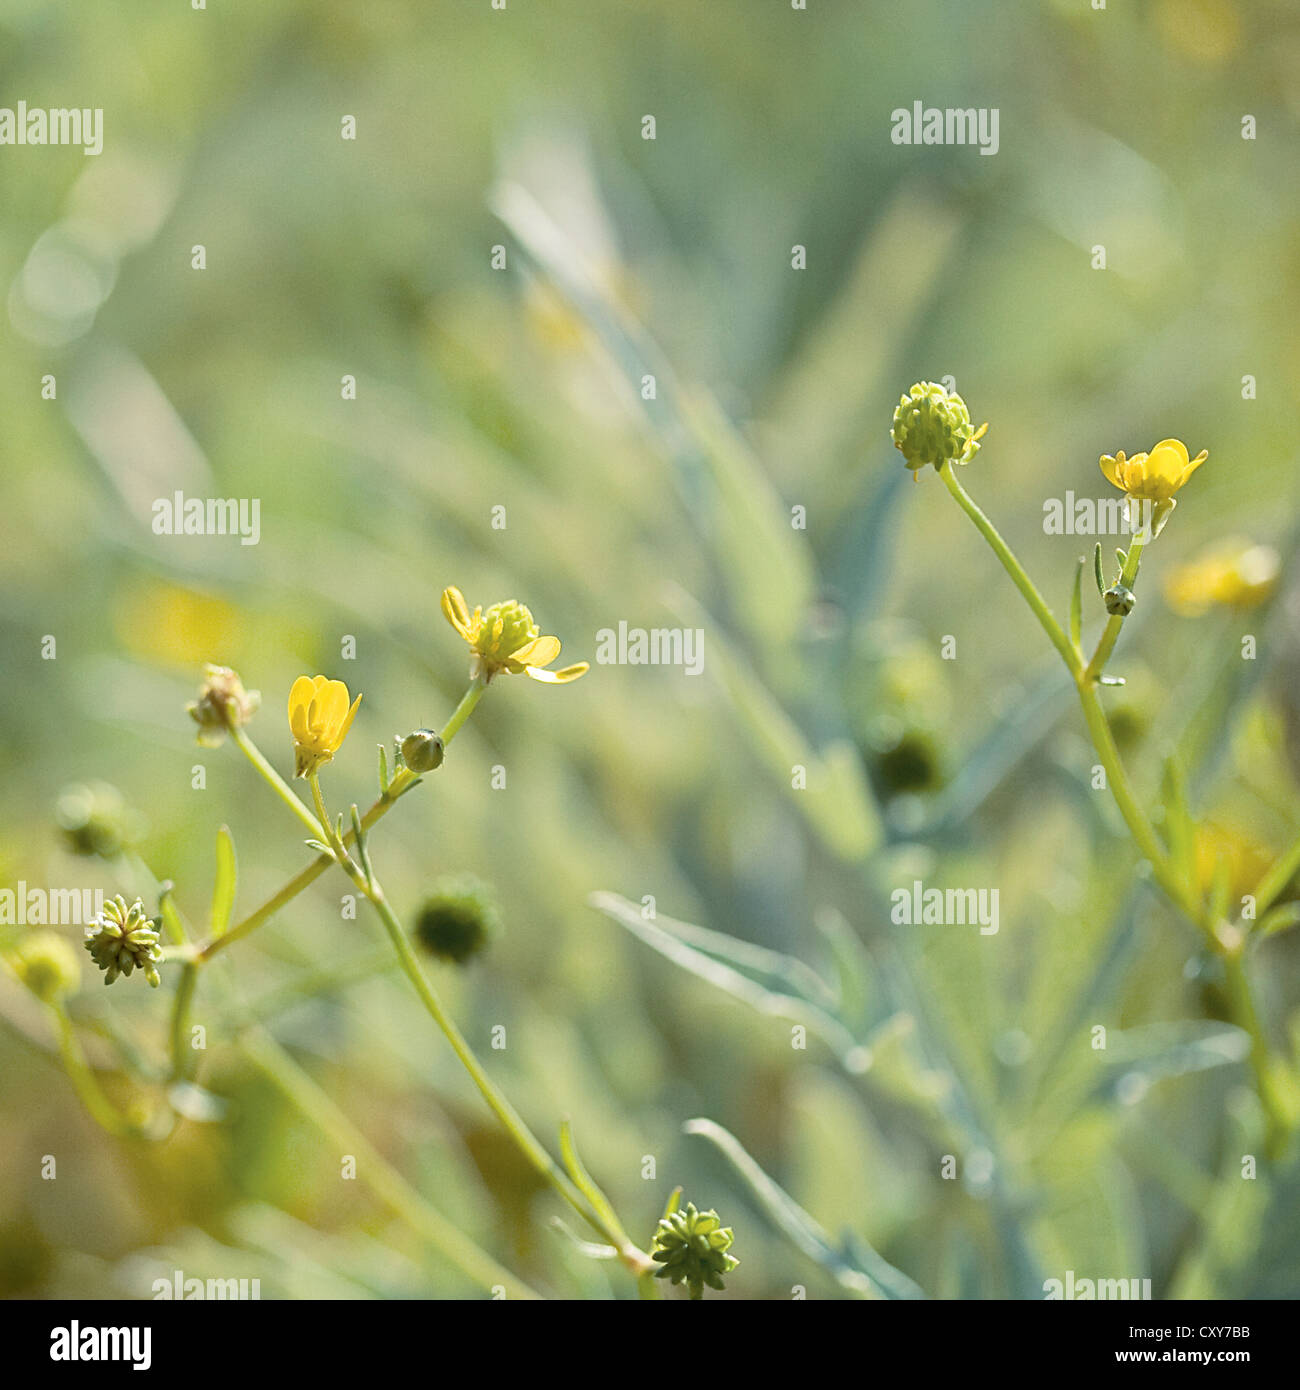 Little green and yellow plants with a bokeh background. - Stock Image